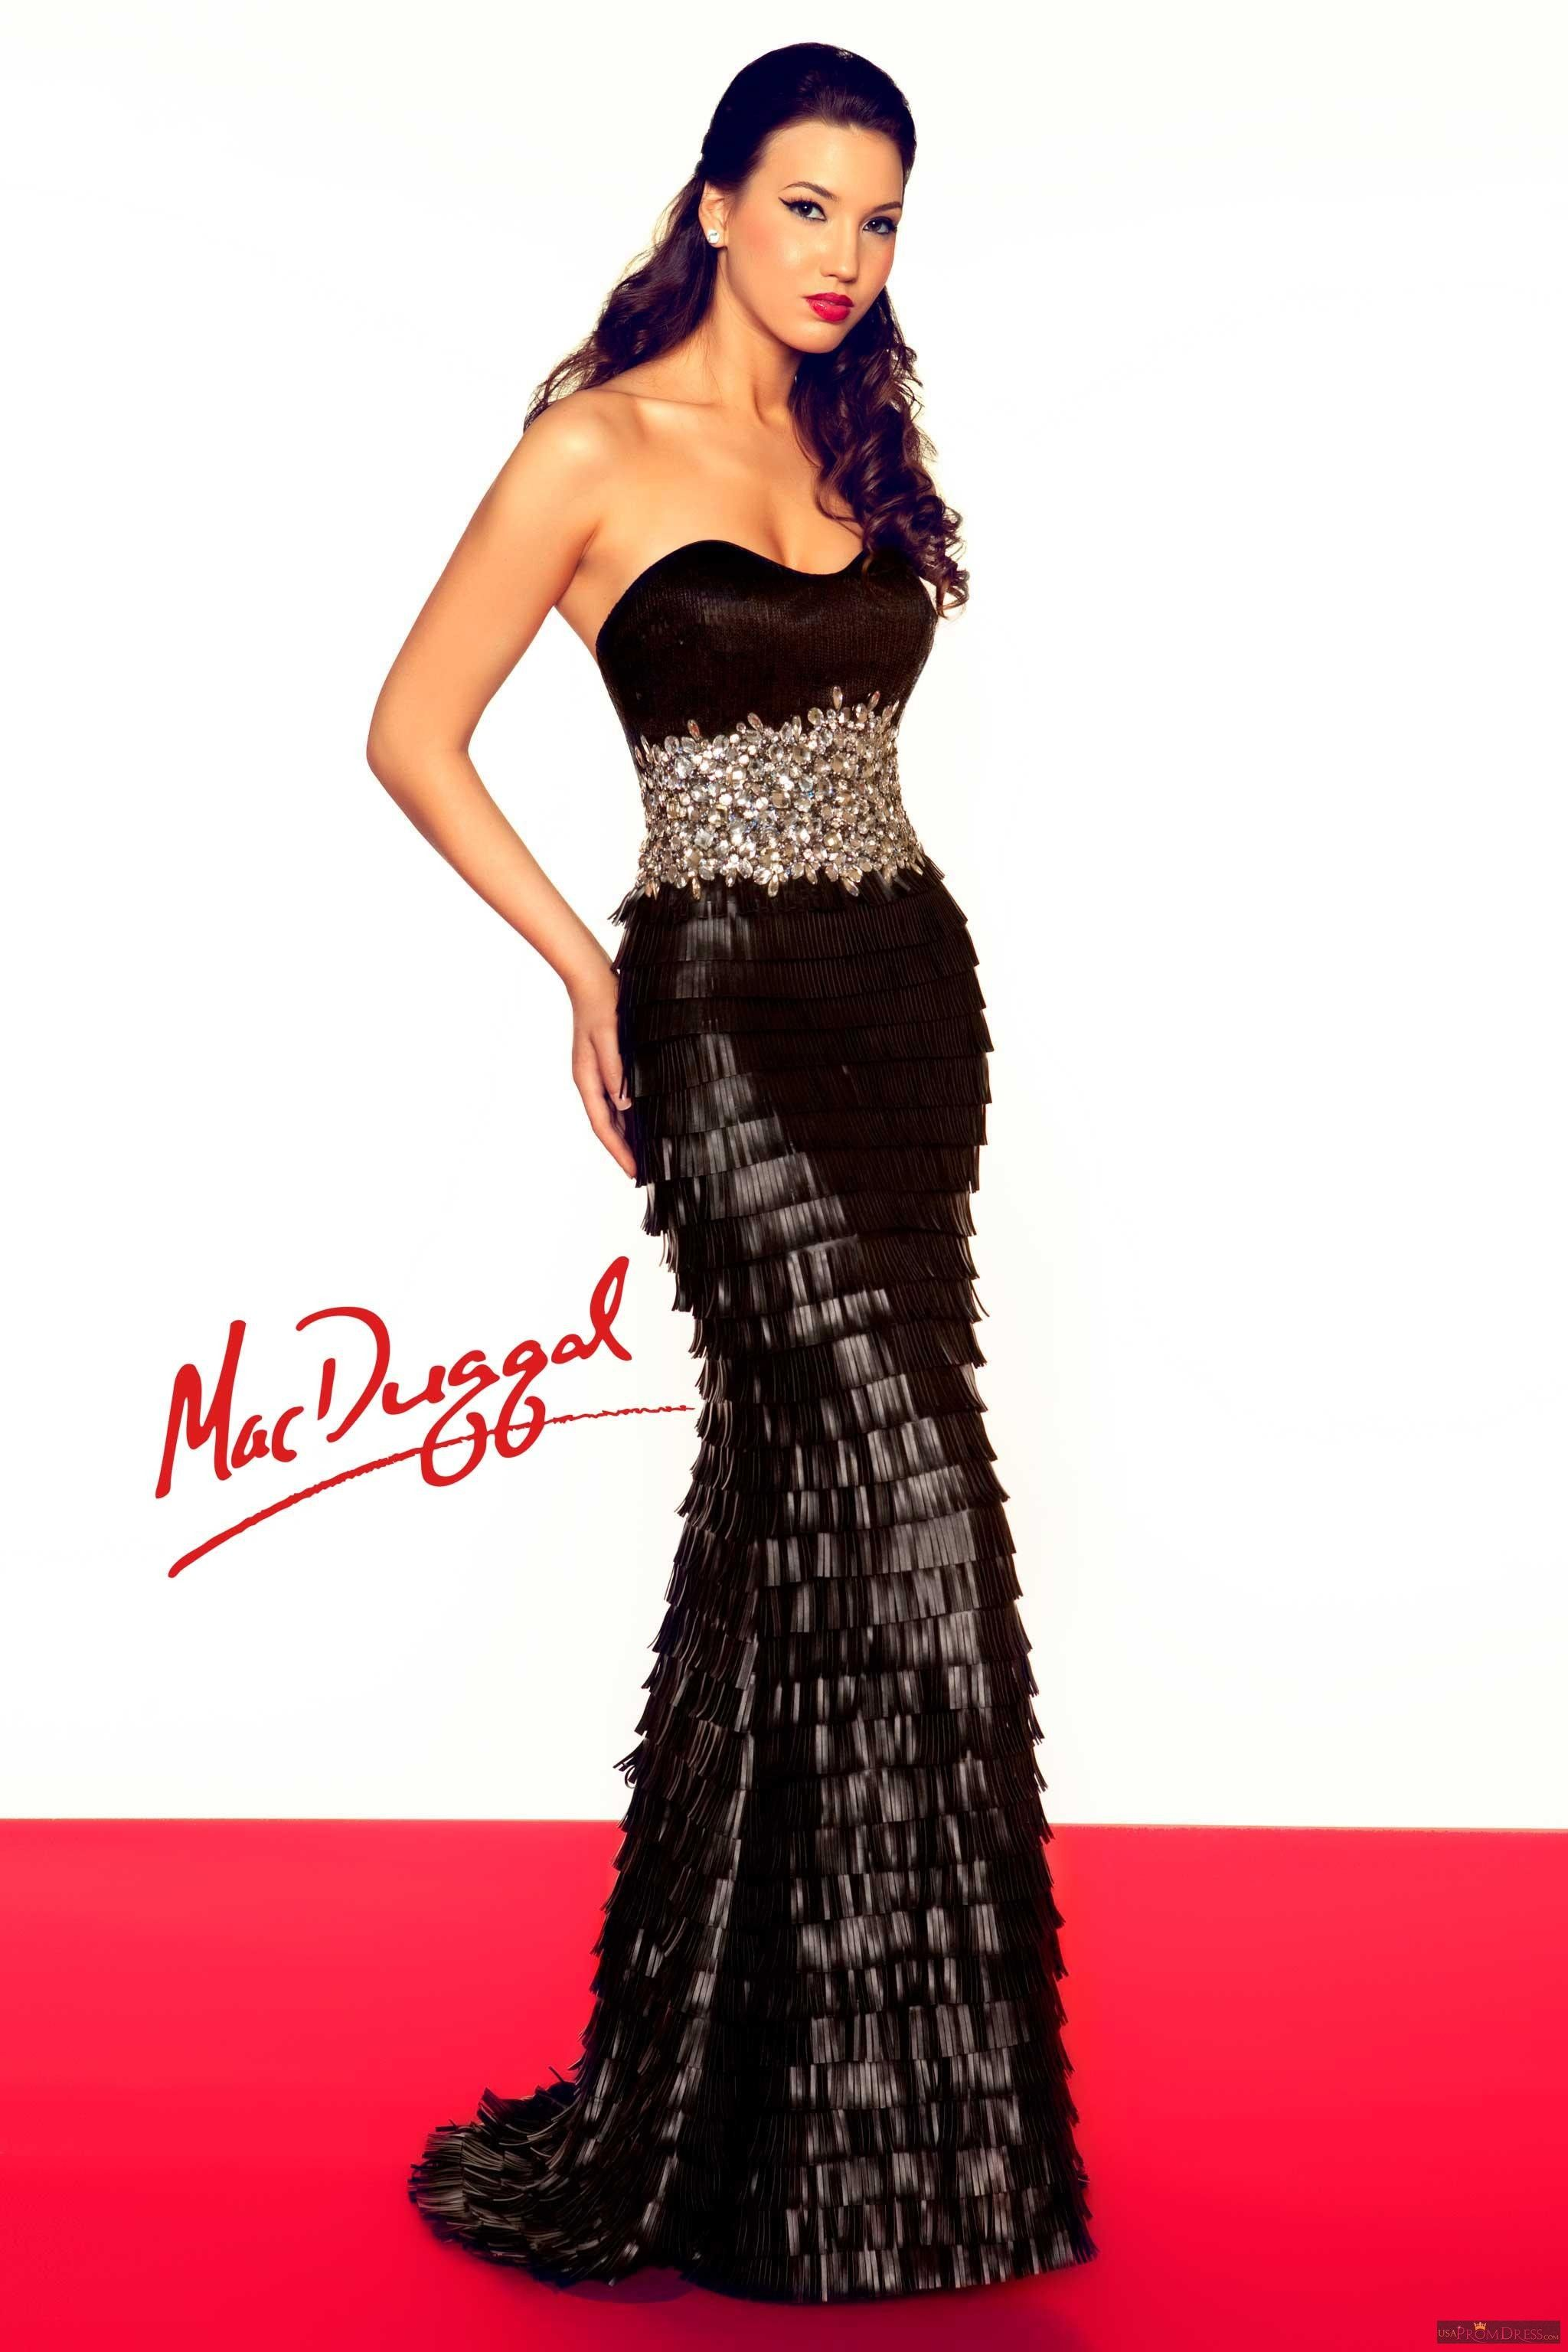 Mac duggal style r a very unique strapless evening gown